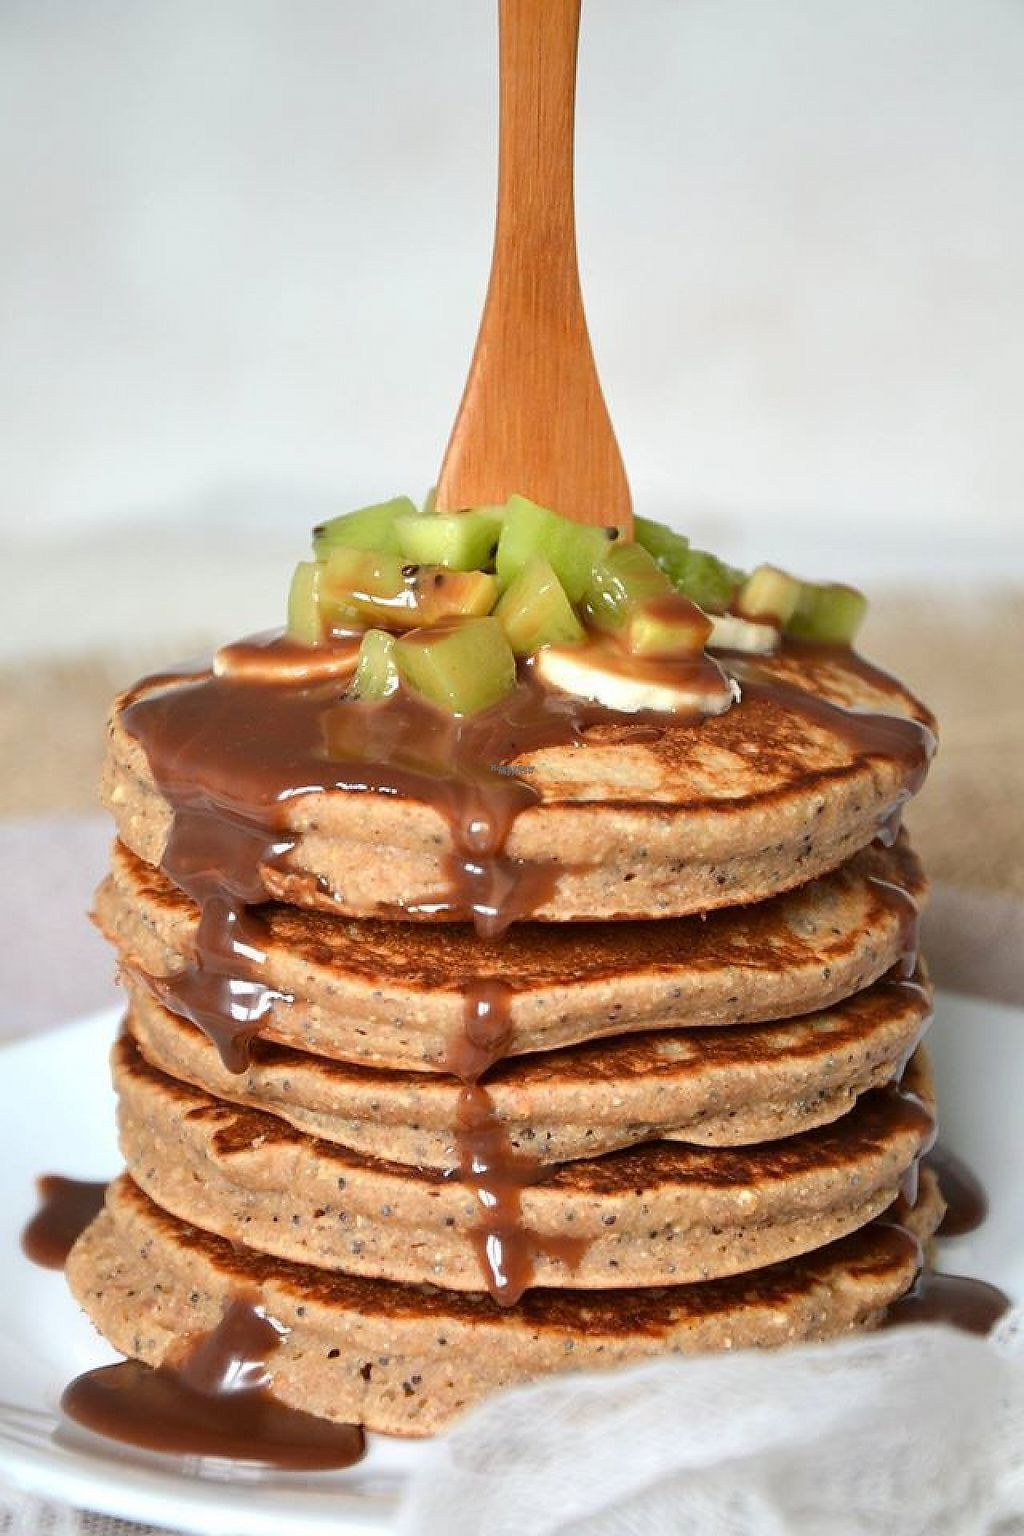 """Photo of La Vie Claire  by <a href=""""/members/profile/community"""">community</a> <br/>vegan hazelnut pancakes  <br/> February 4, 2017  - <a href='/contact/abuse/image/68769/221798'>Report</a>"""